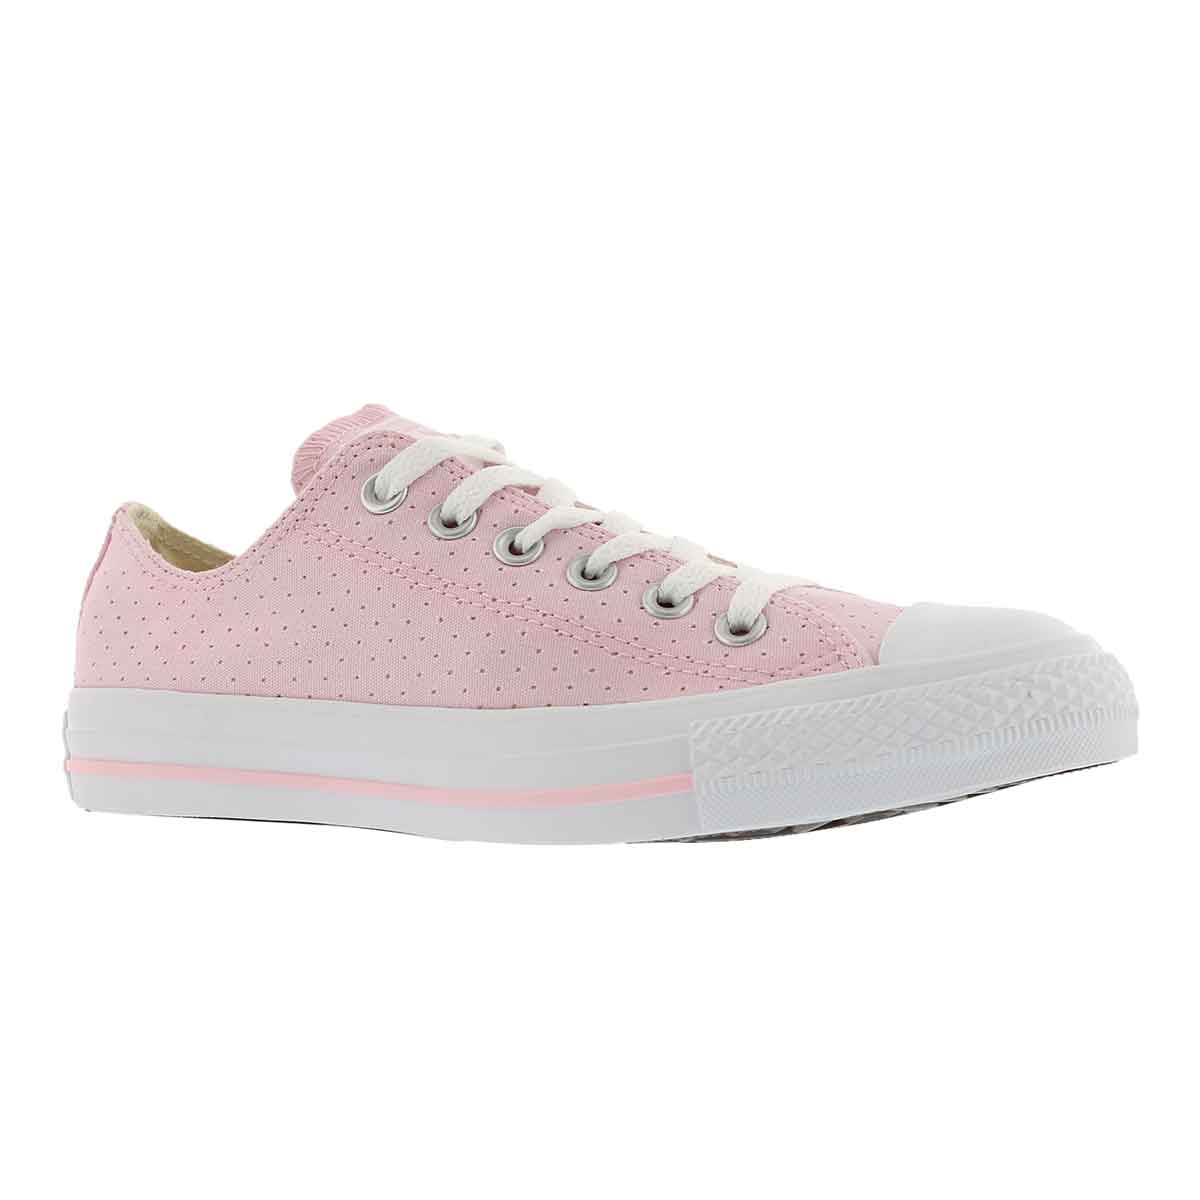 Lds CT A/S Perf cherry/wht sneaker